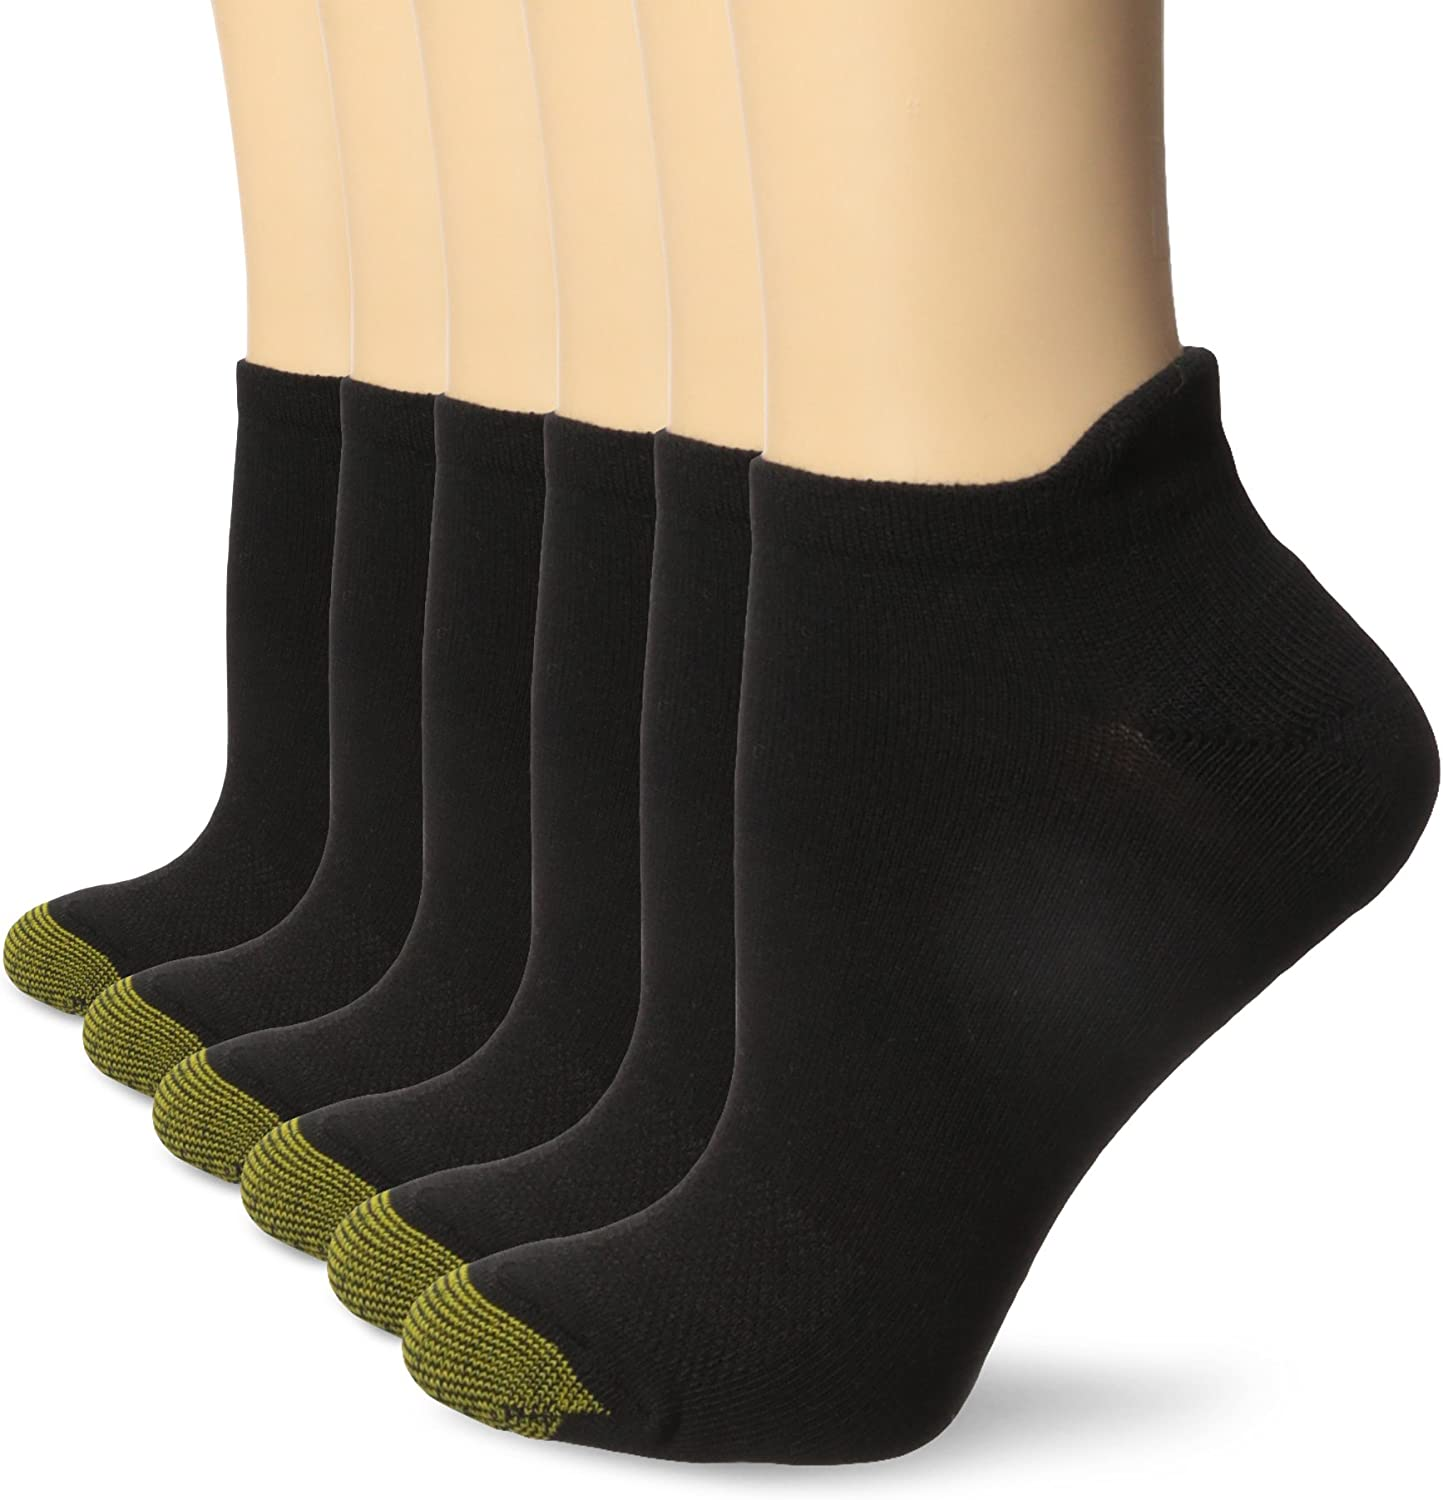 Gold Toe Women's Sport Vacation No Show Socks with Tab, 6-Pairs